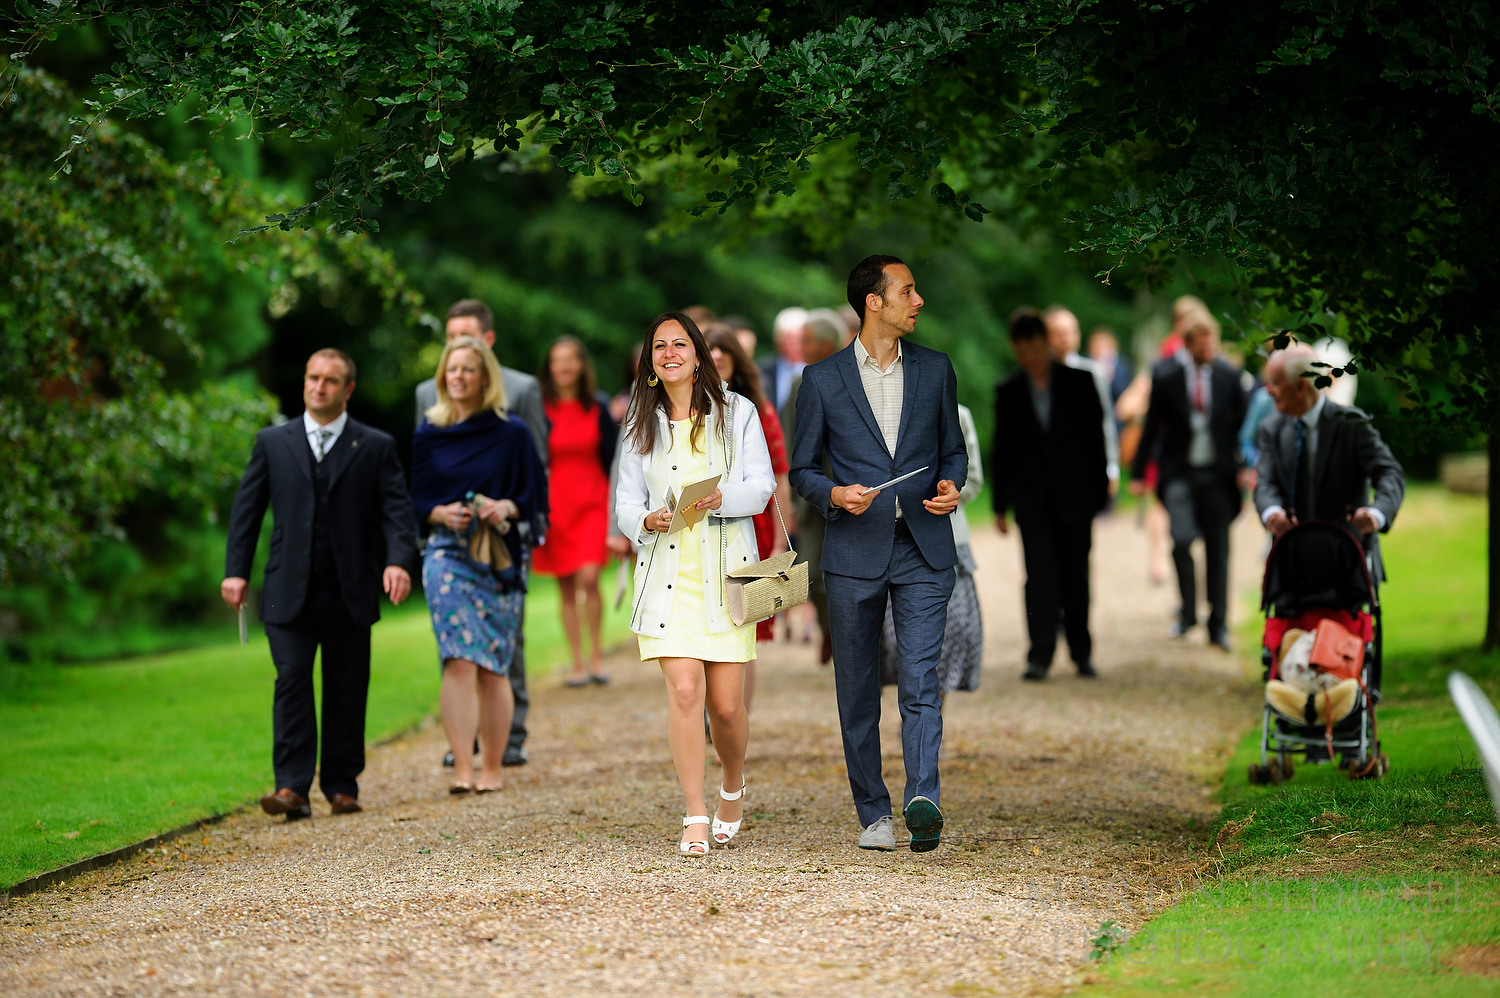 Wedding guests walk to the reception